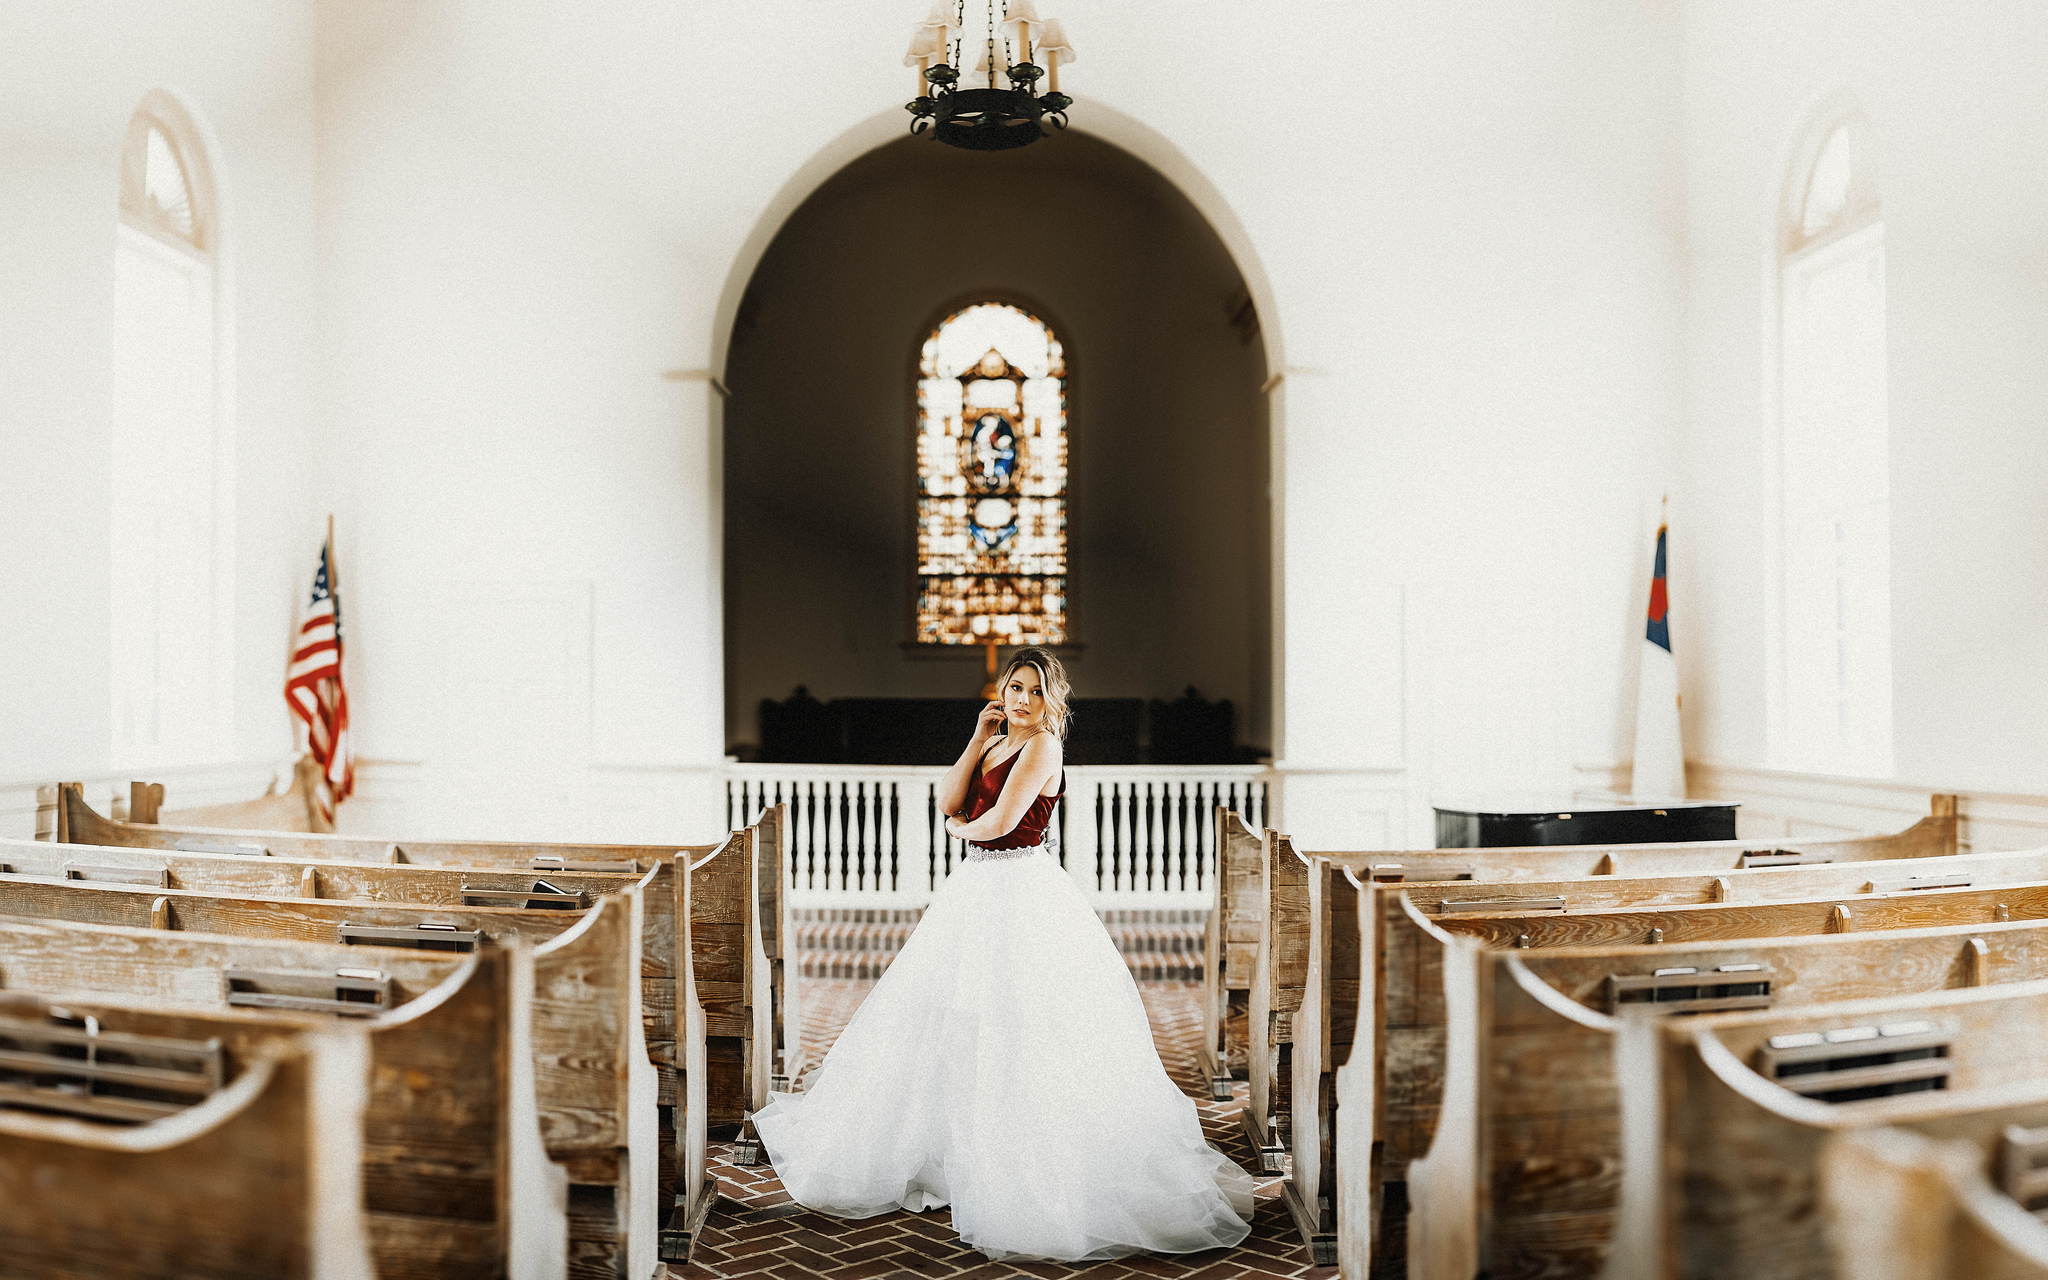 Bridal Portrait example inside the chapel - 20 image pano shot using the Leica SL + 75mm Noctilux at f/1.2